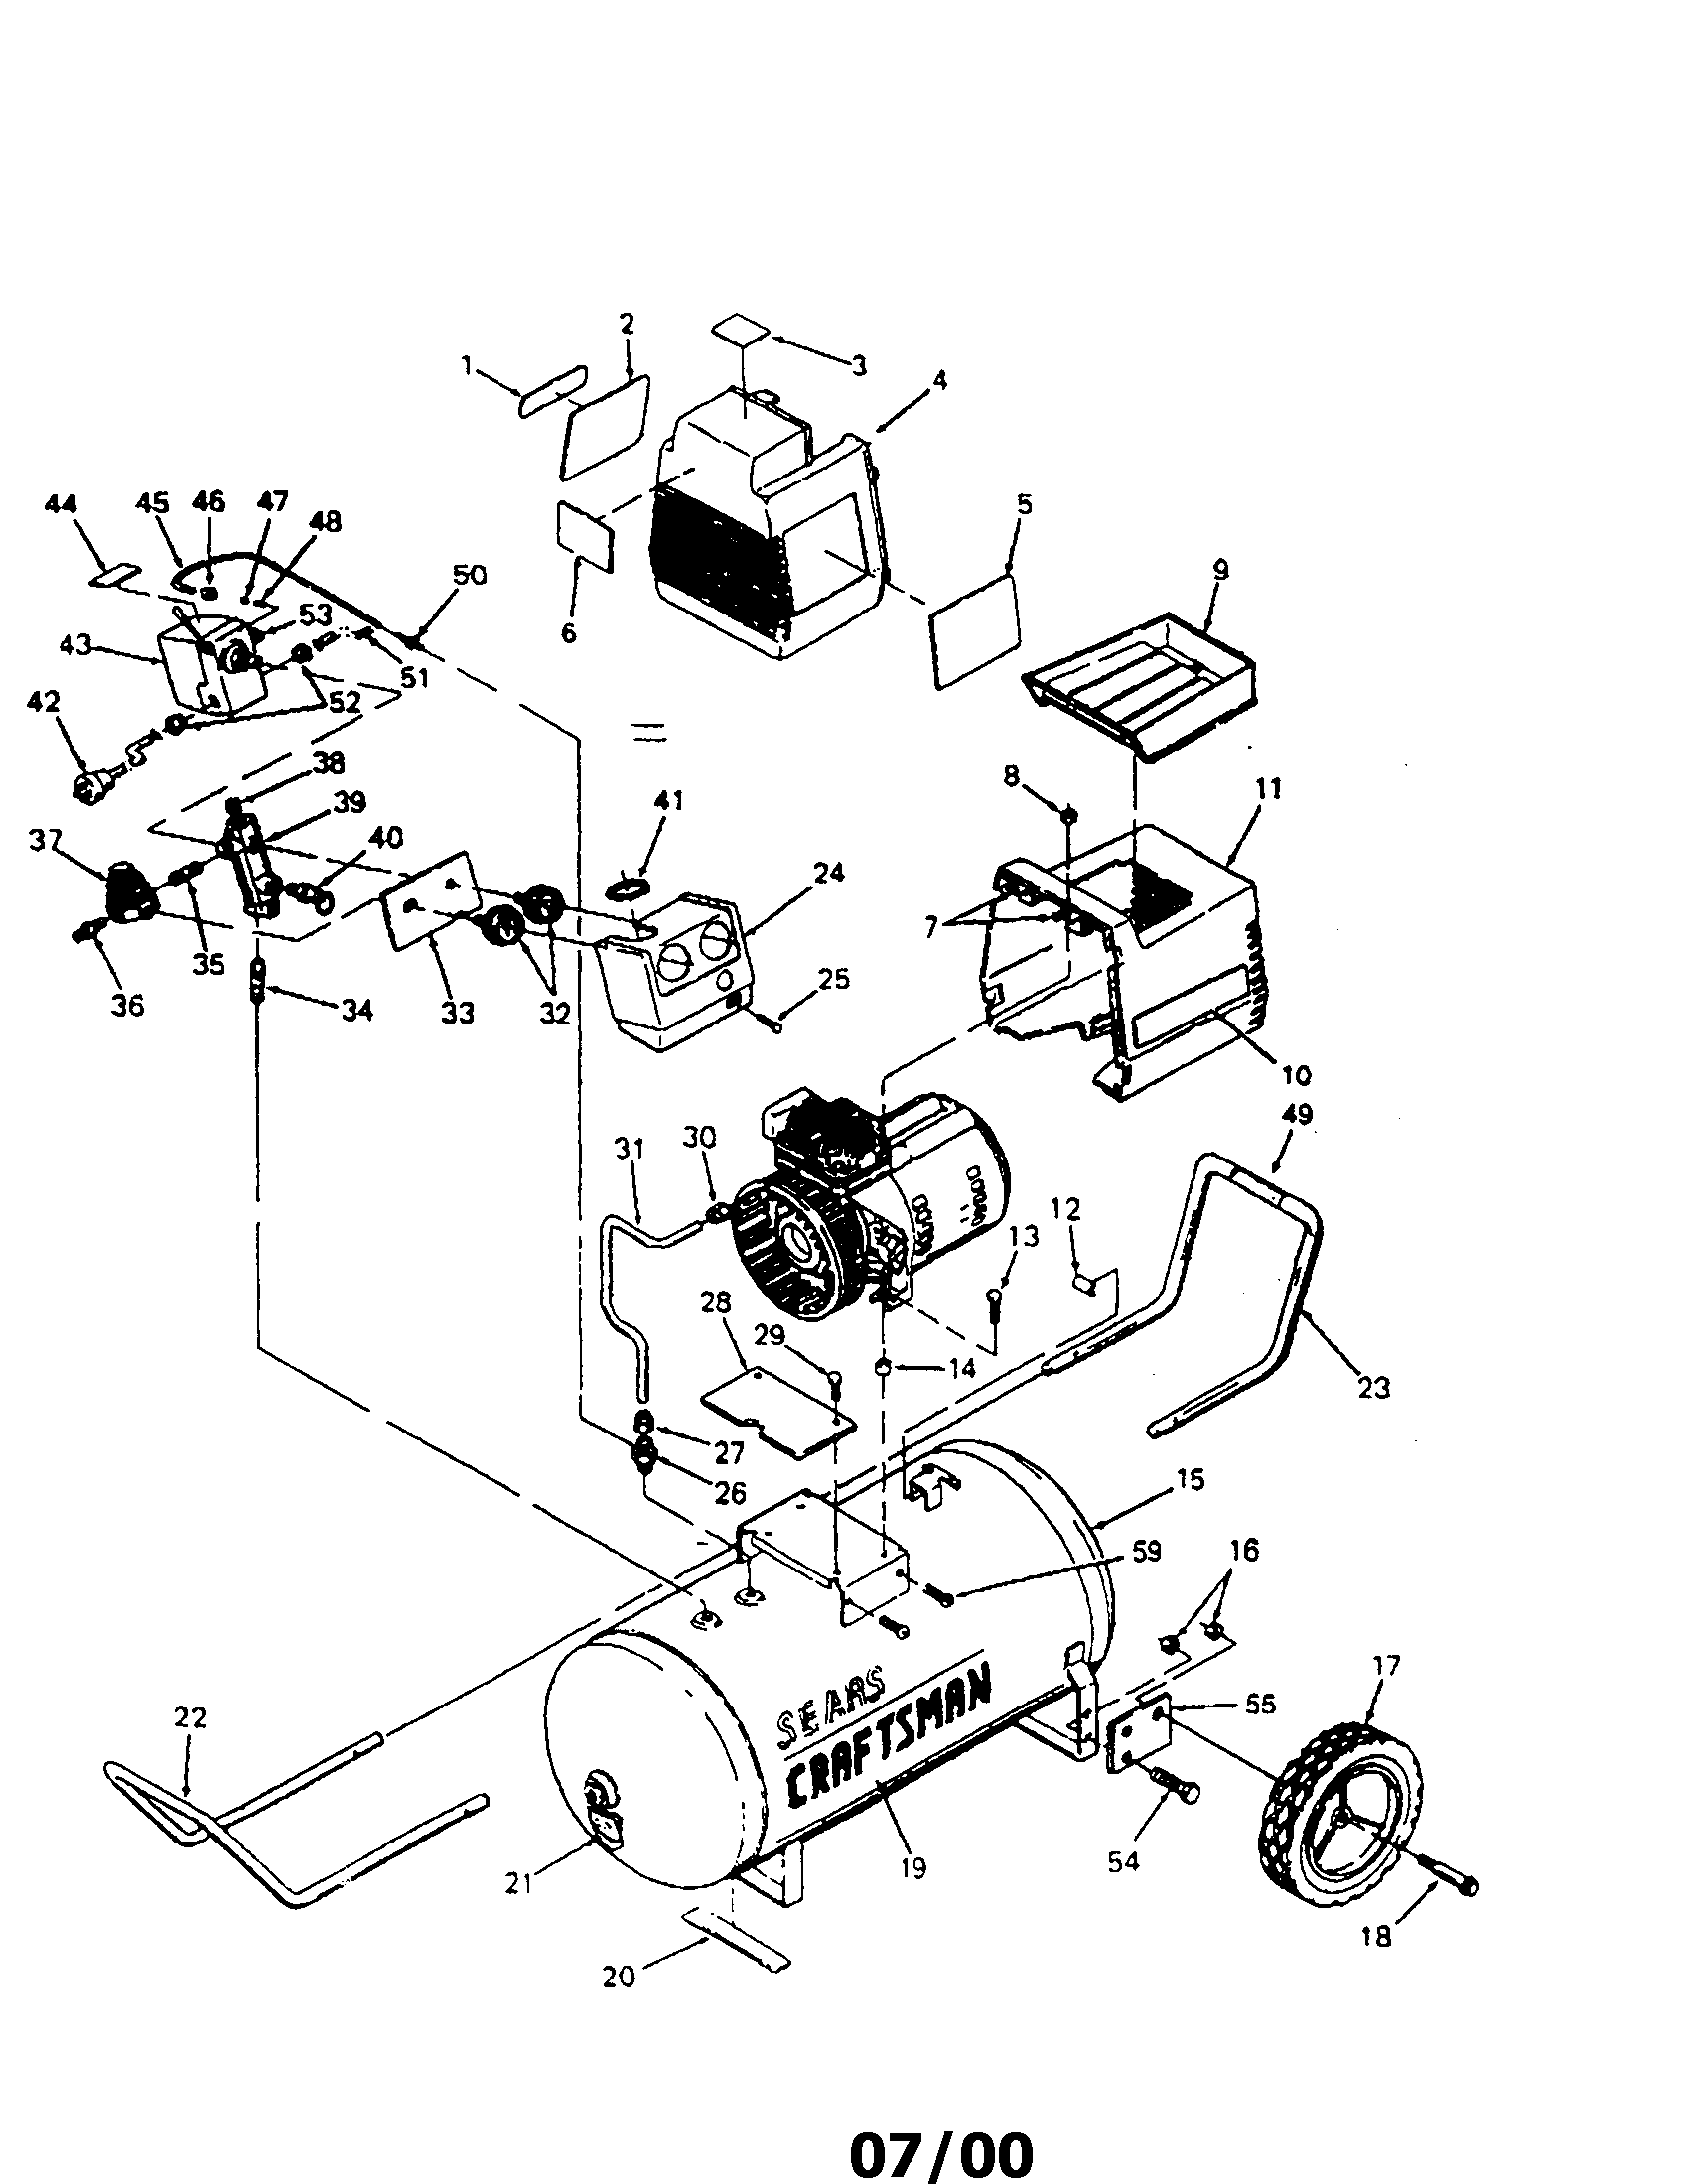 919.153231_craftsman_compressor_parts 919 153231 sears craftsman air compressor parts abac air compressor wiring diagram at arjmand.co